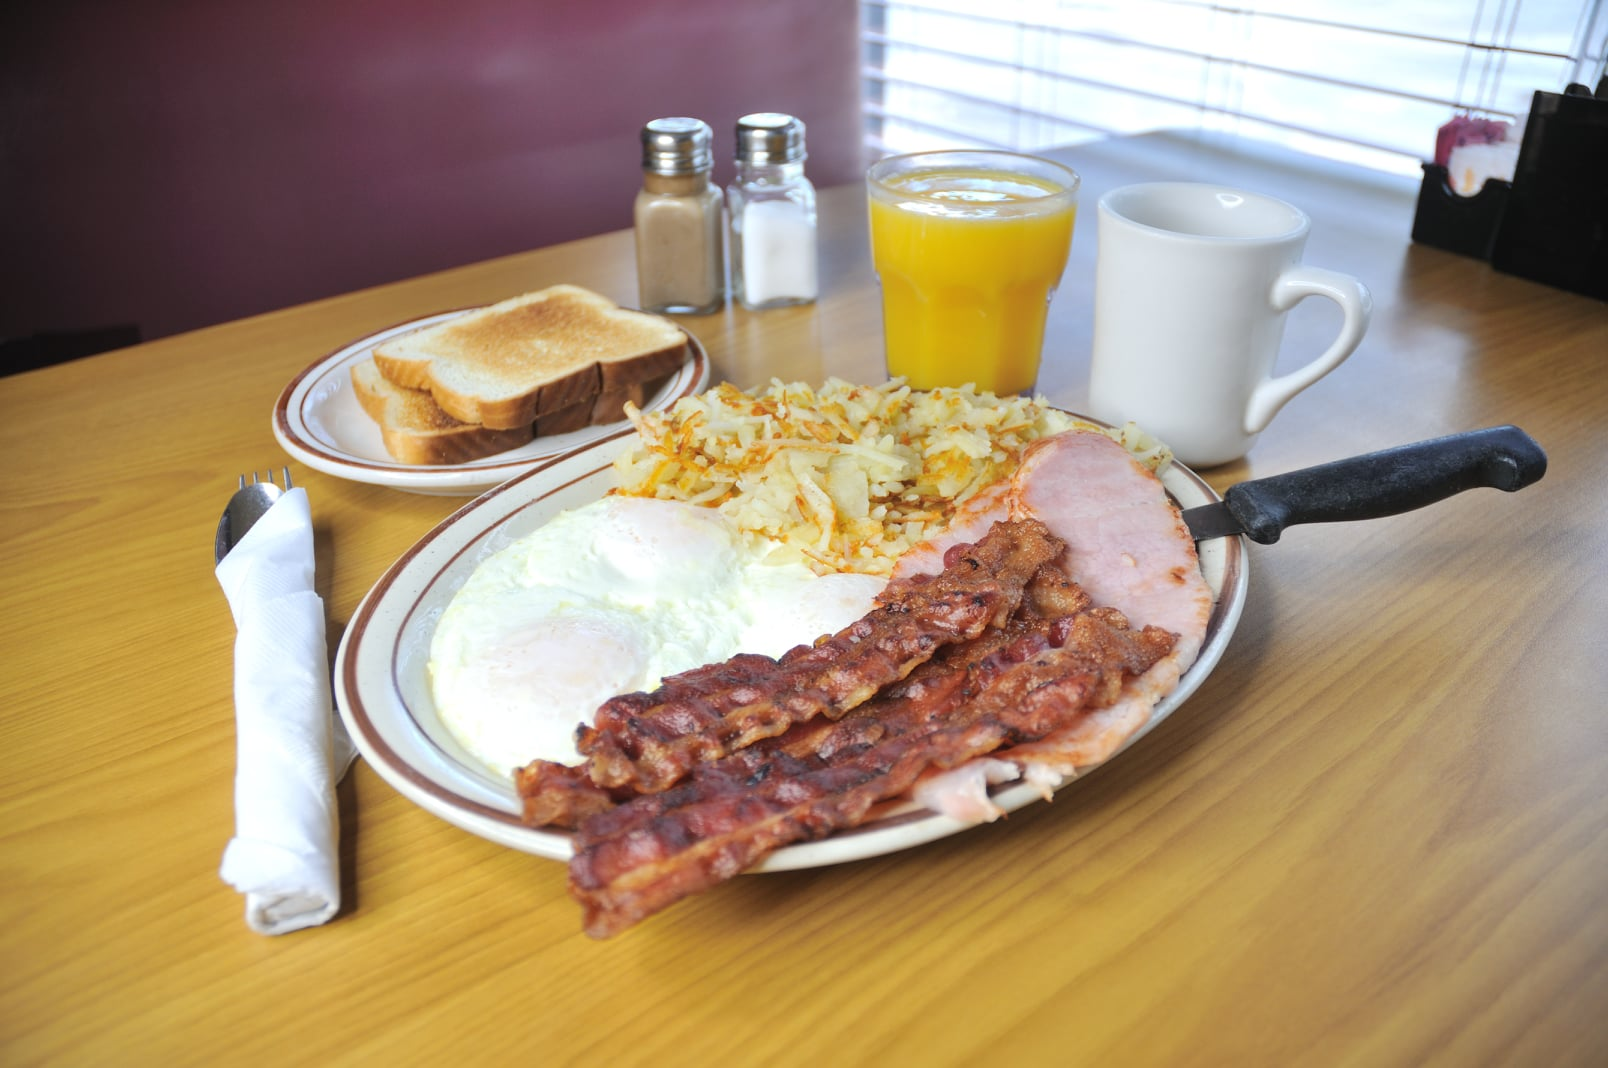 fried eggs, bacon, hame, hash browns, and toast with a cup of coffee and orange juice